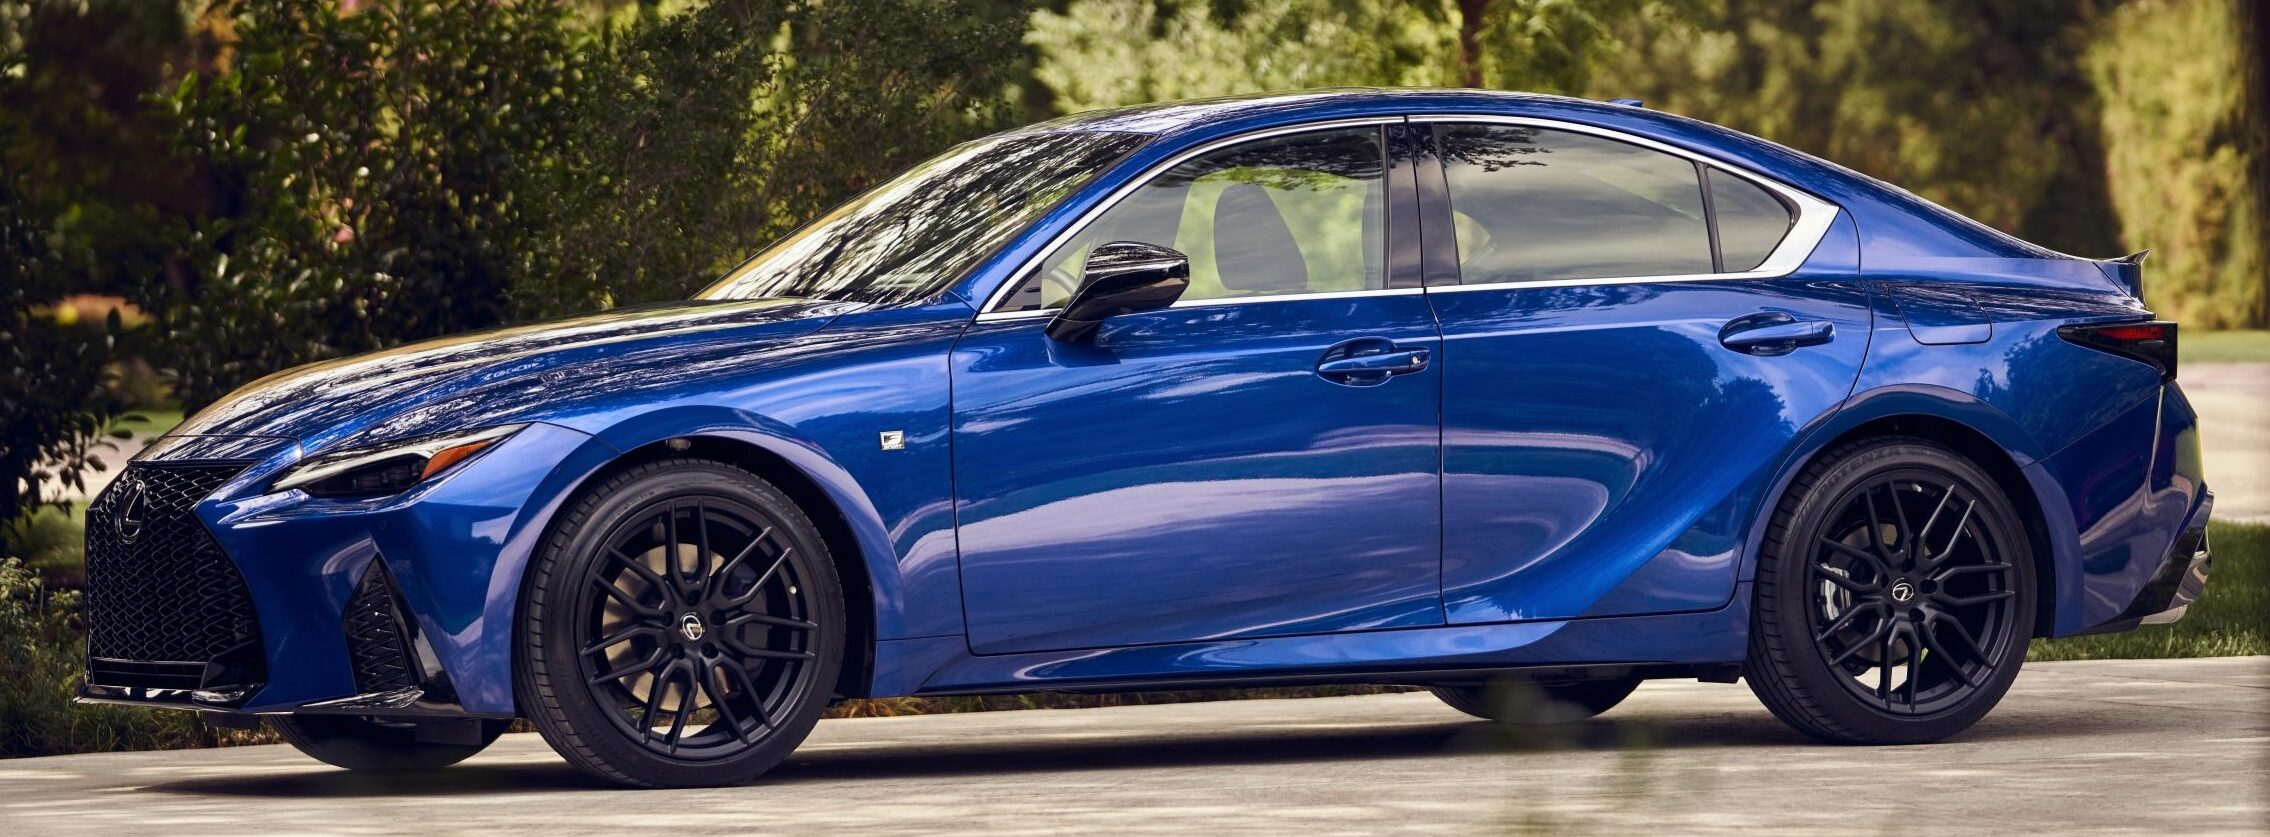 A side view of the Lexus IS 350 F Sport